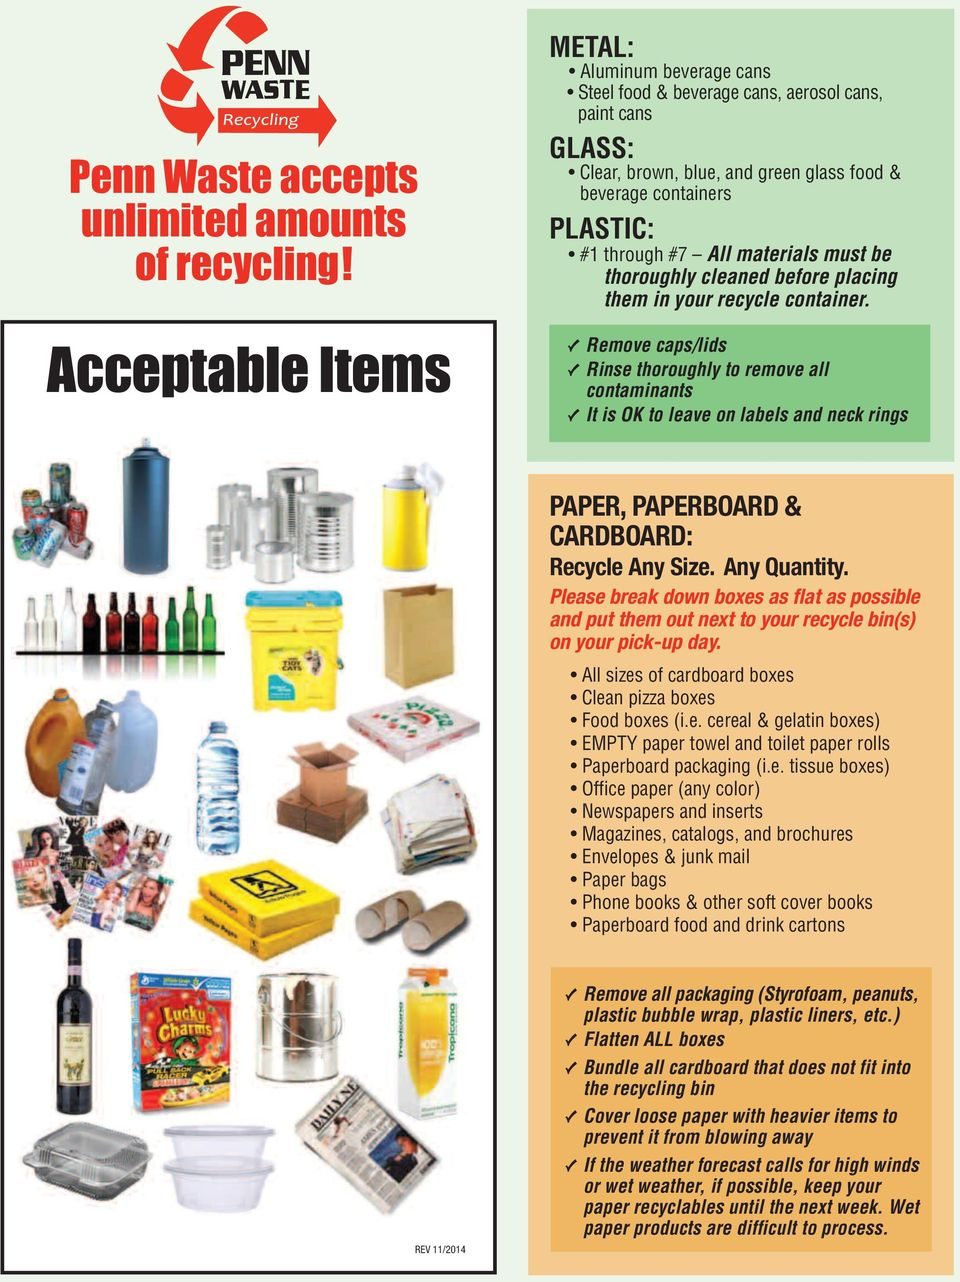 materials must be thoroughly cleaned before placing them in your recycle container.